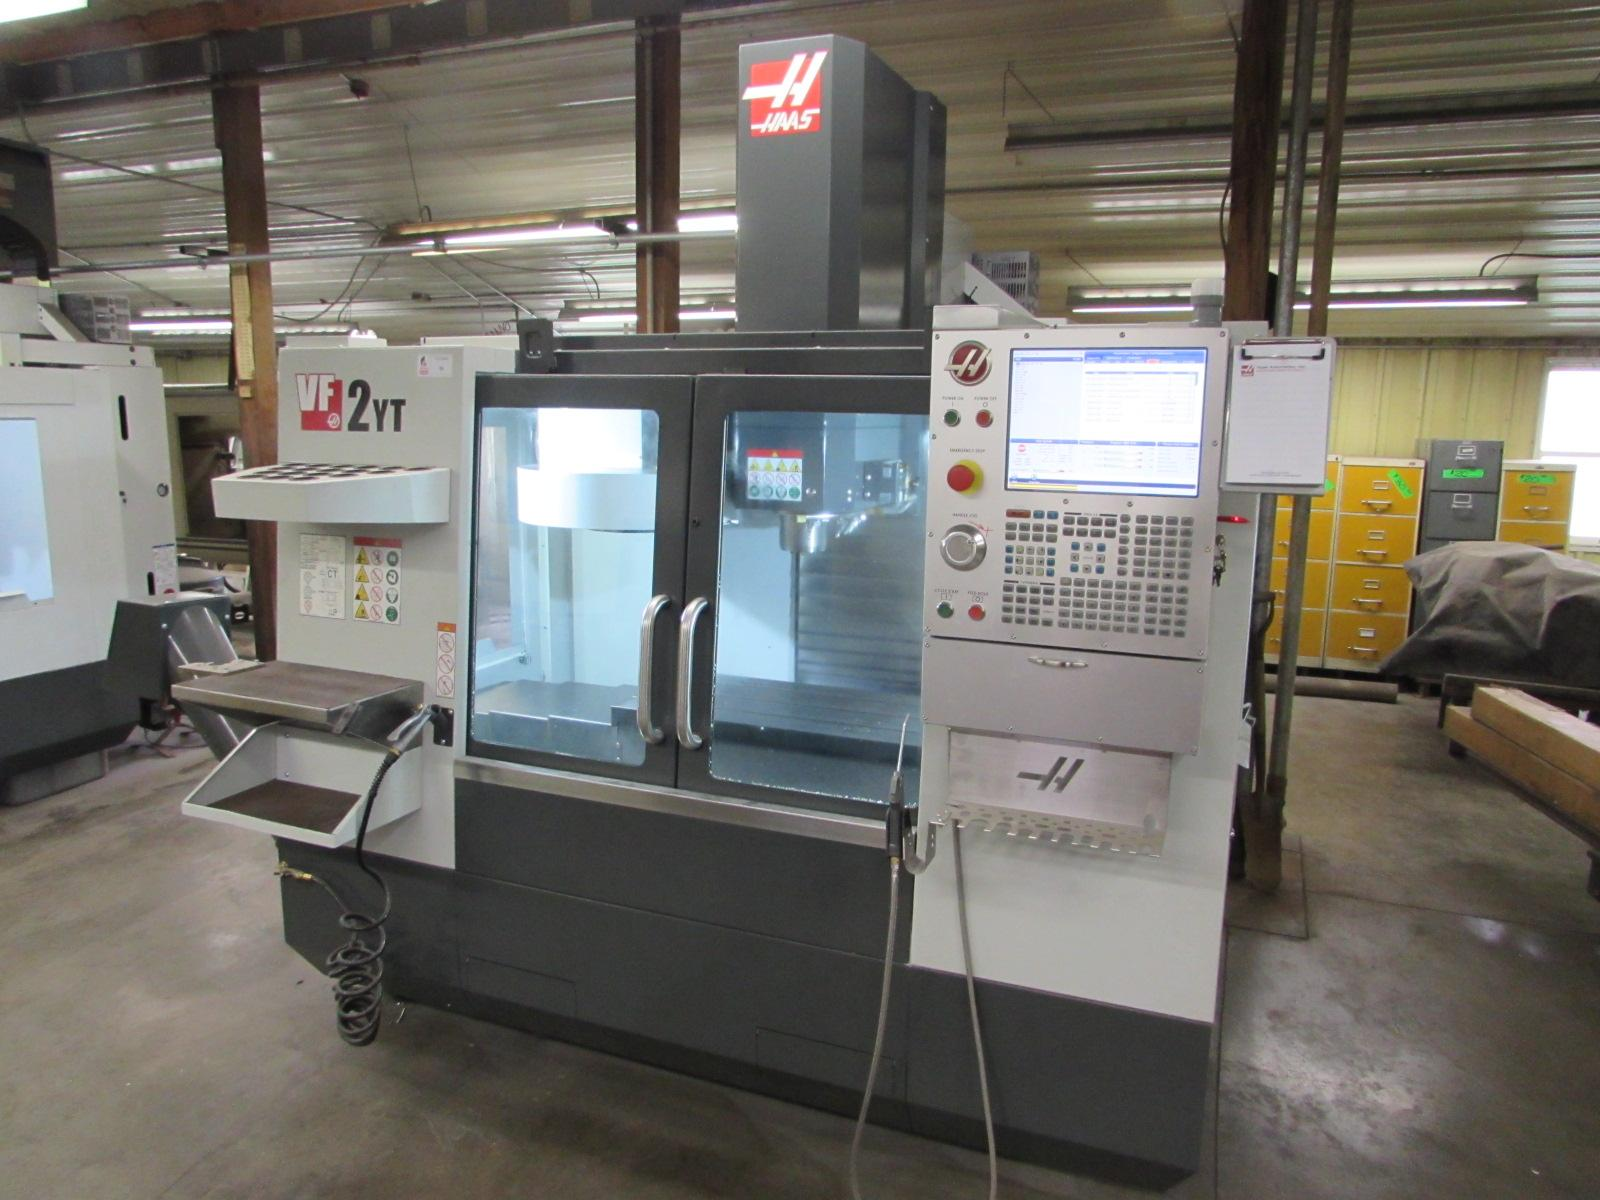 Online Auction Featuring 2 Haas VF-2YT, Haas VF-3YT